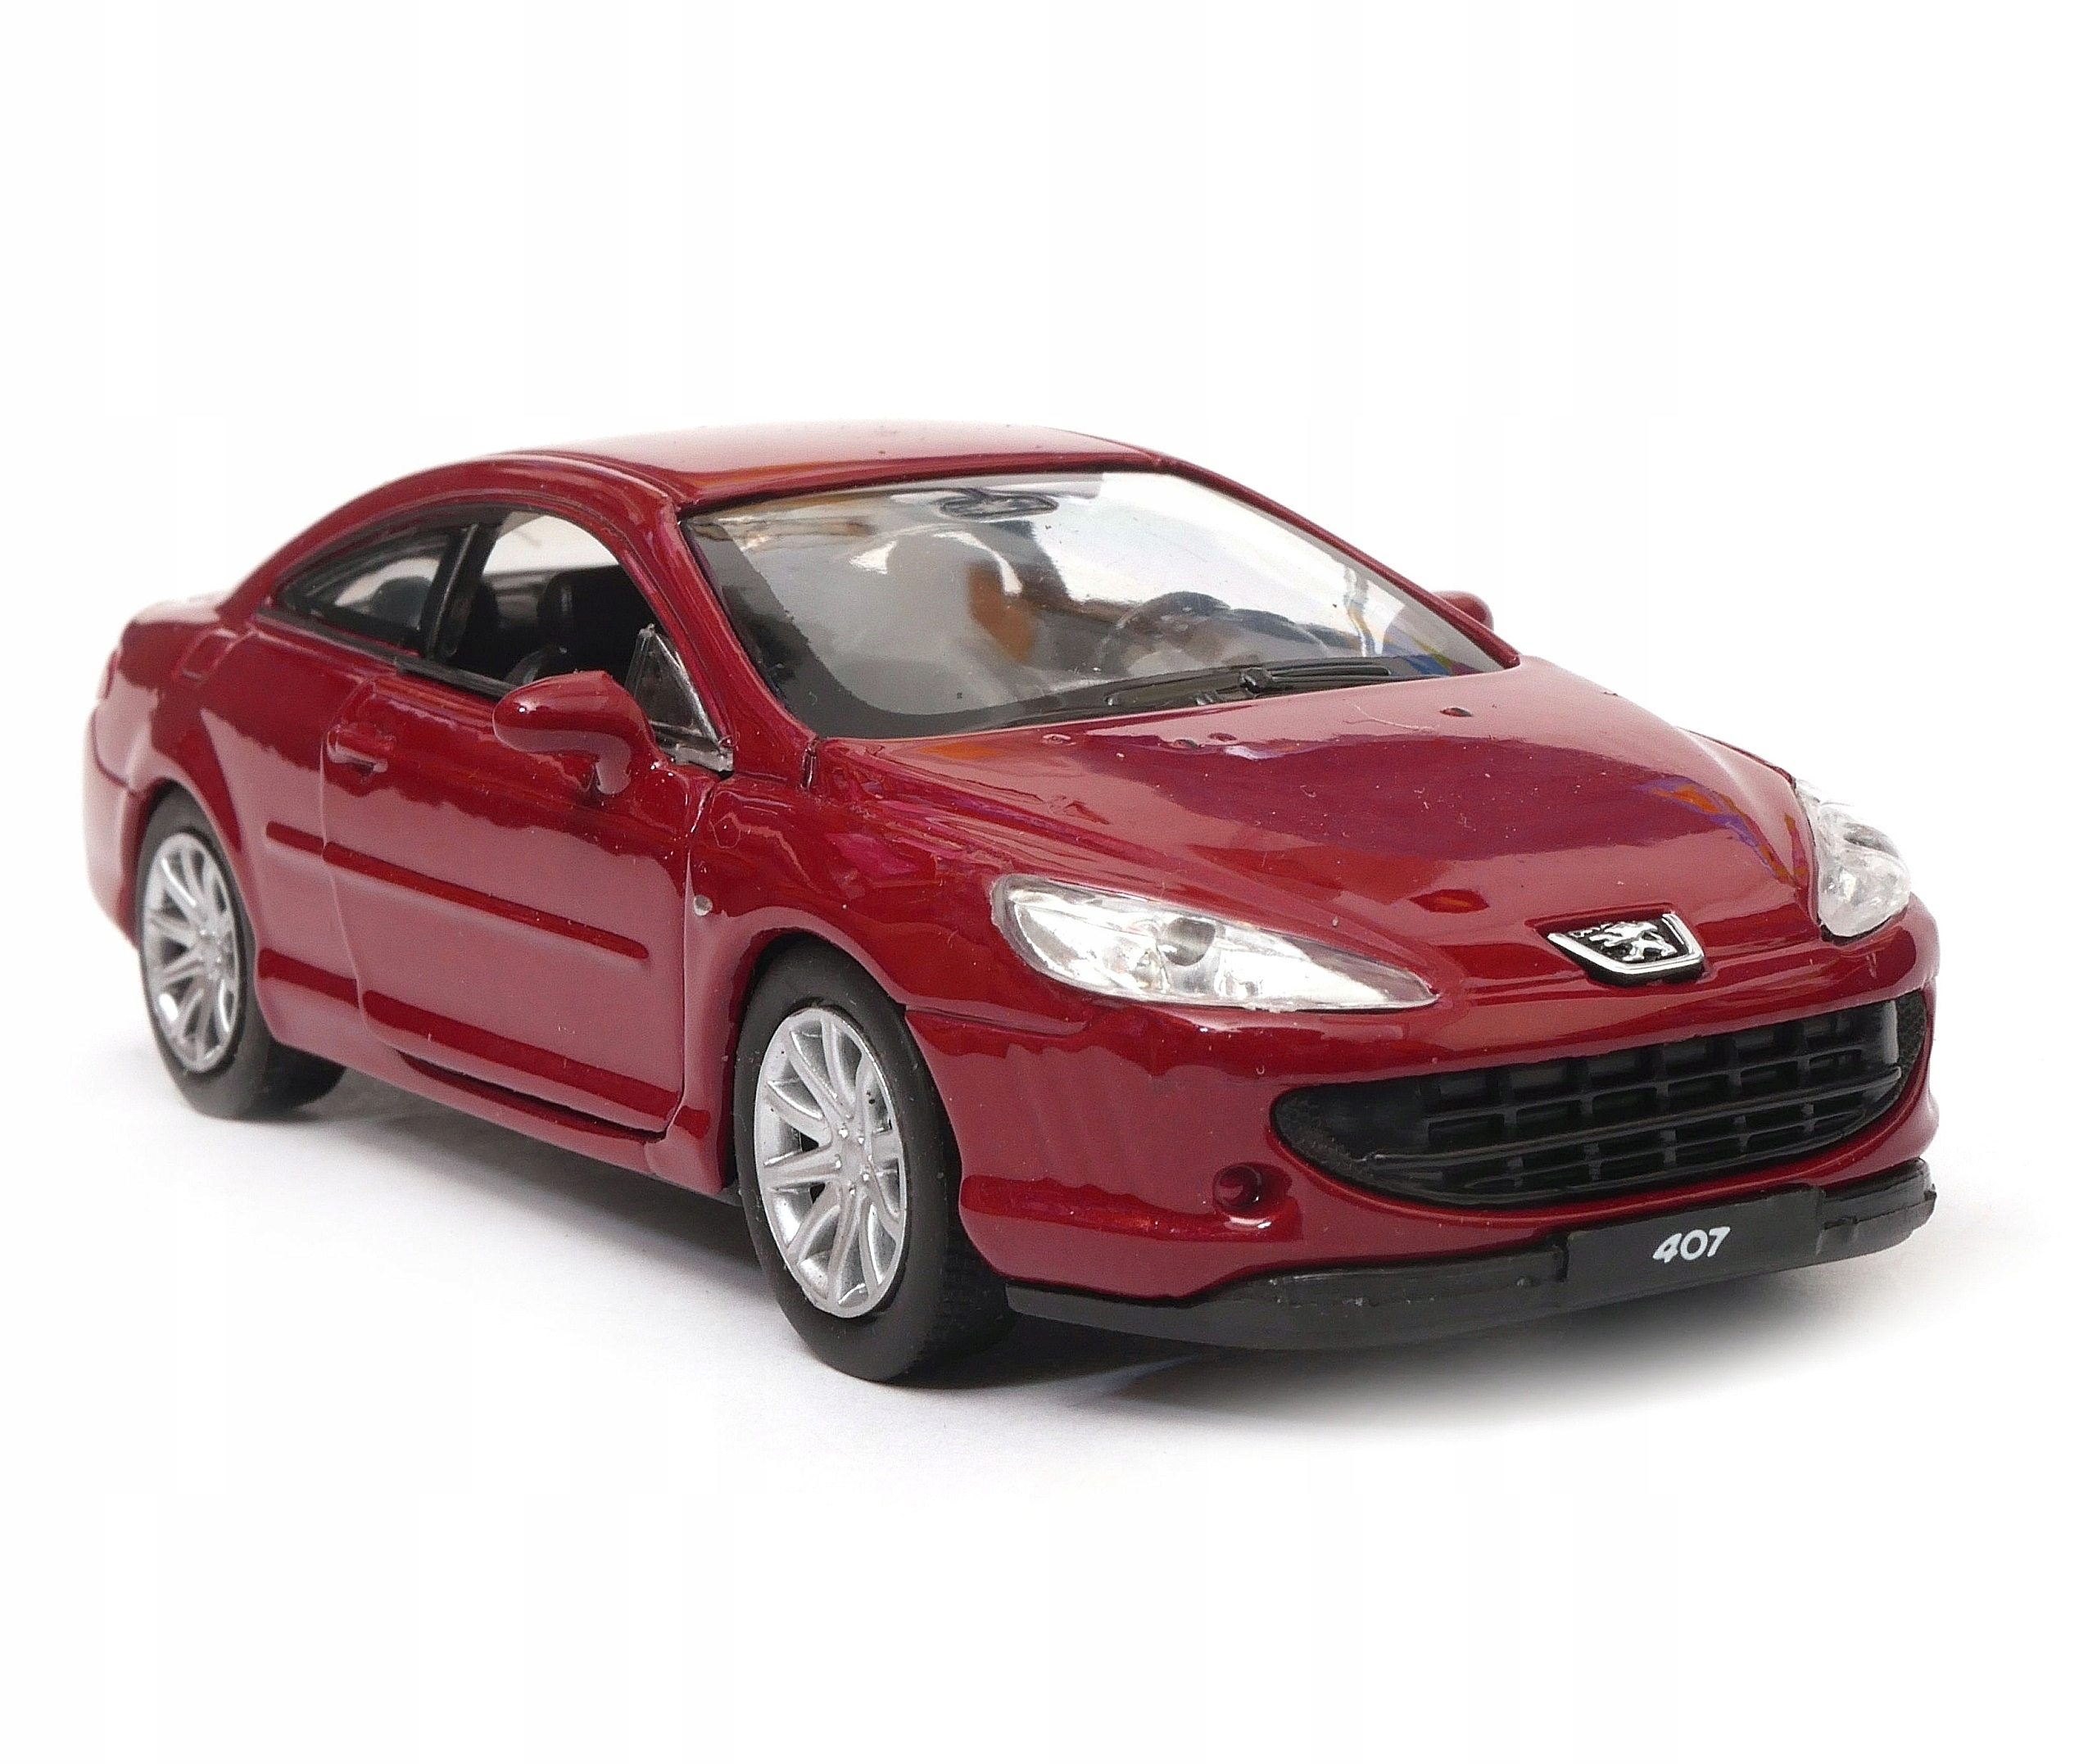 Peugeot 407 Coupe 1 34 39 Model Welly Bordowy 8972082534 Allegro Pl